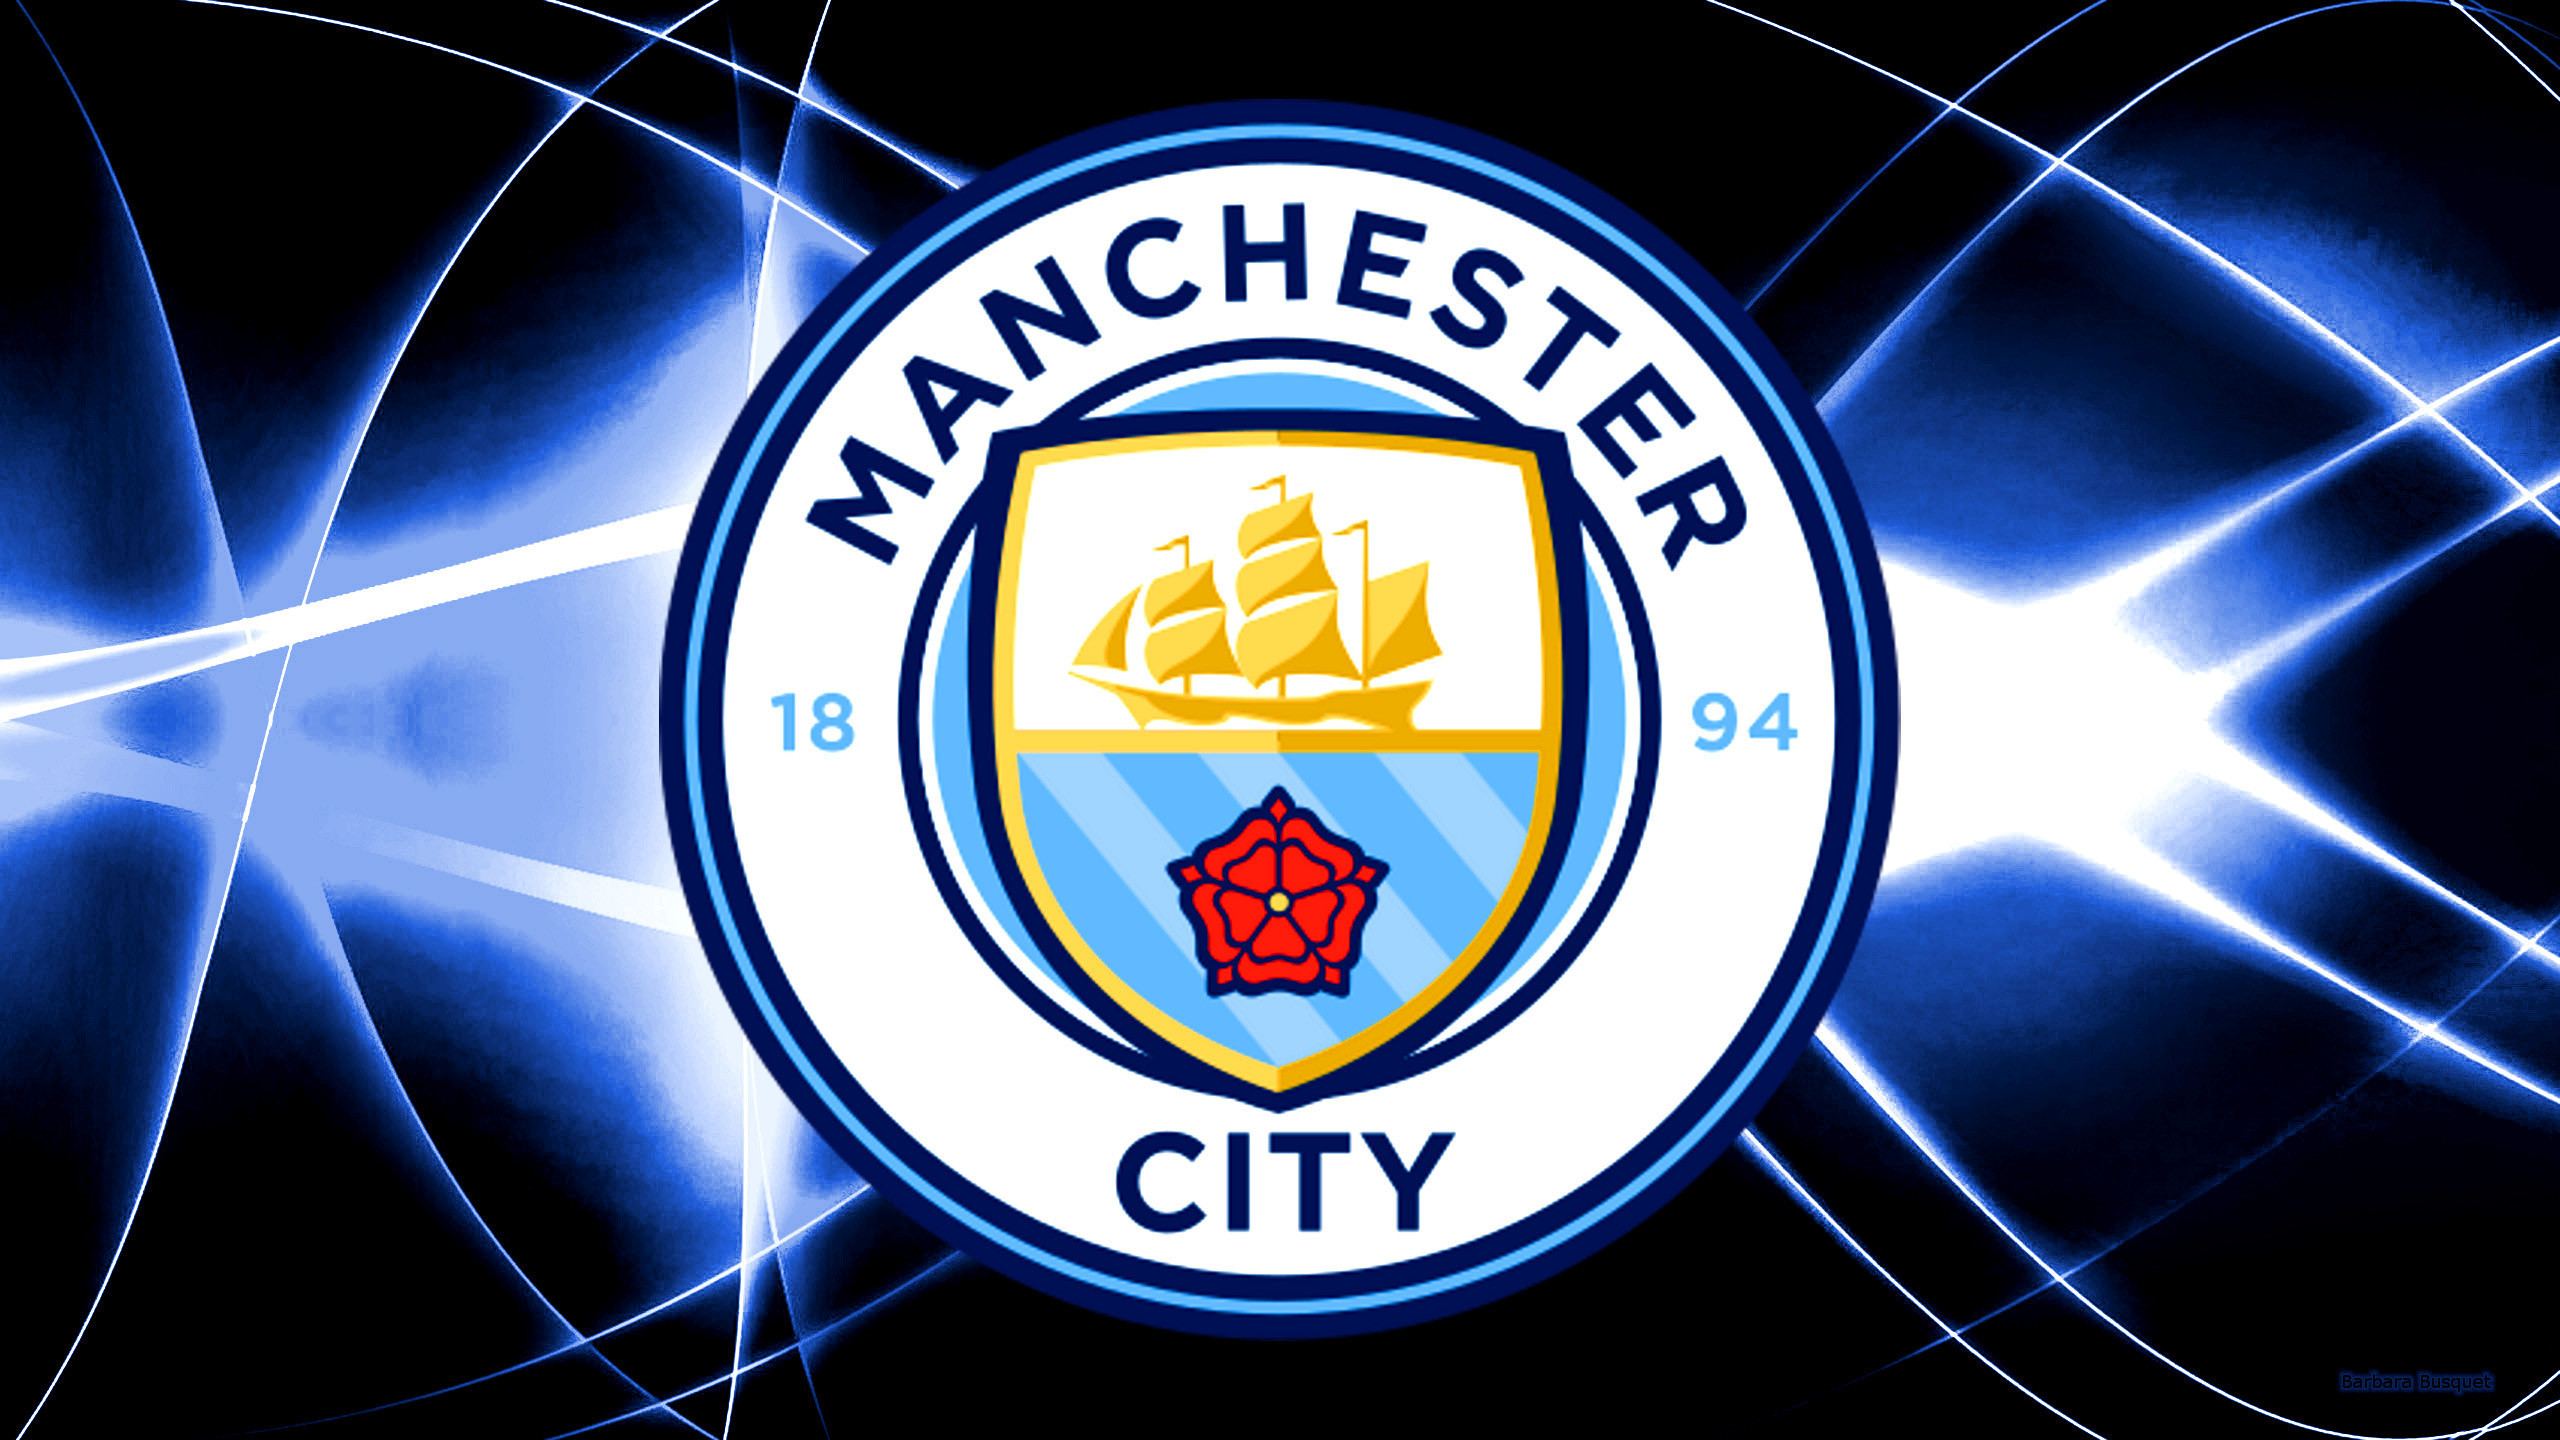 Man City Wallpaper 2017 ·①